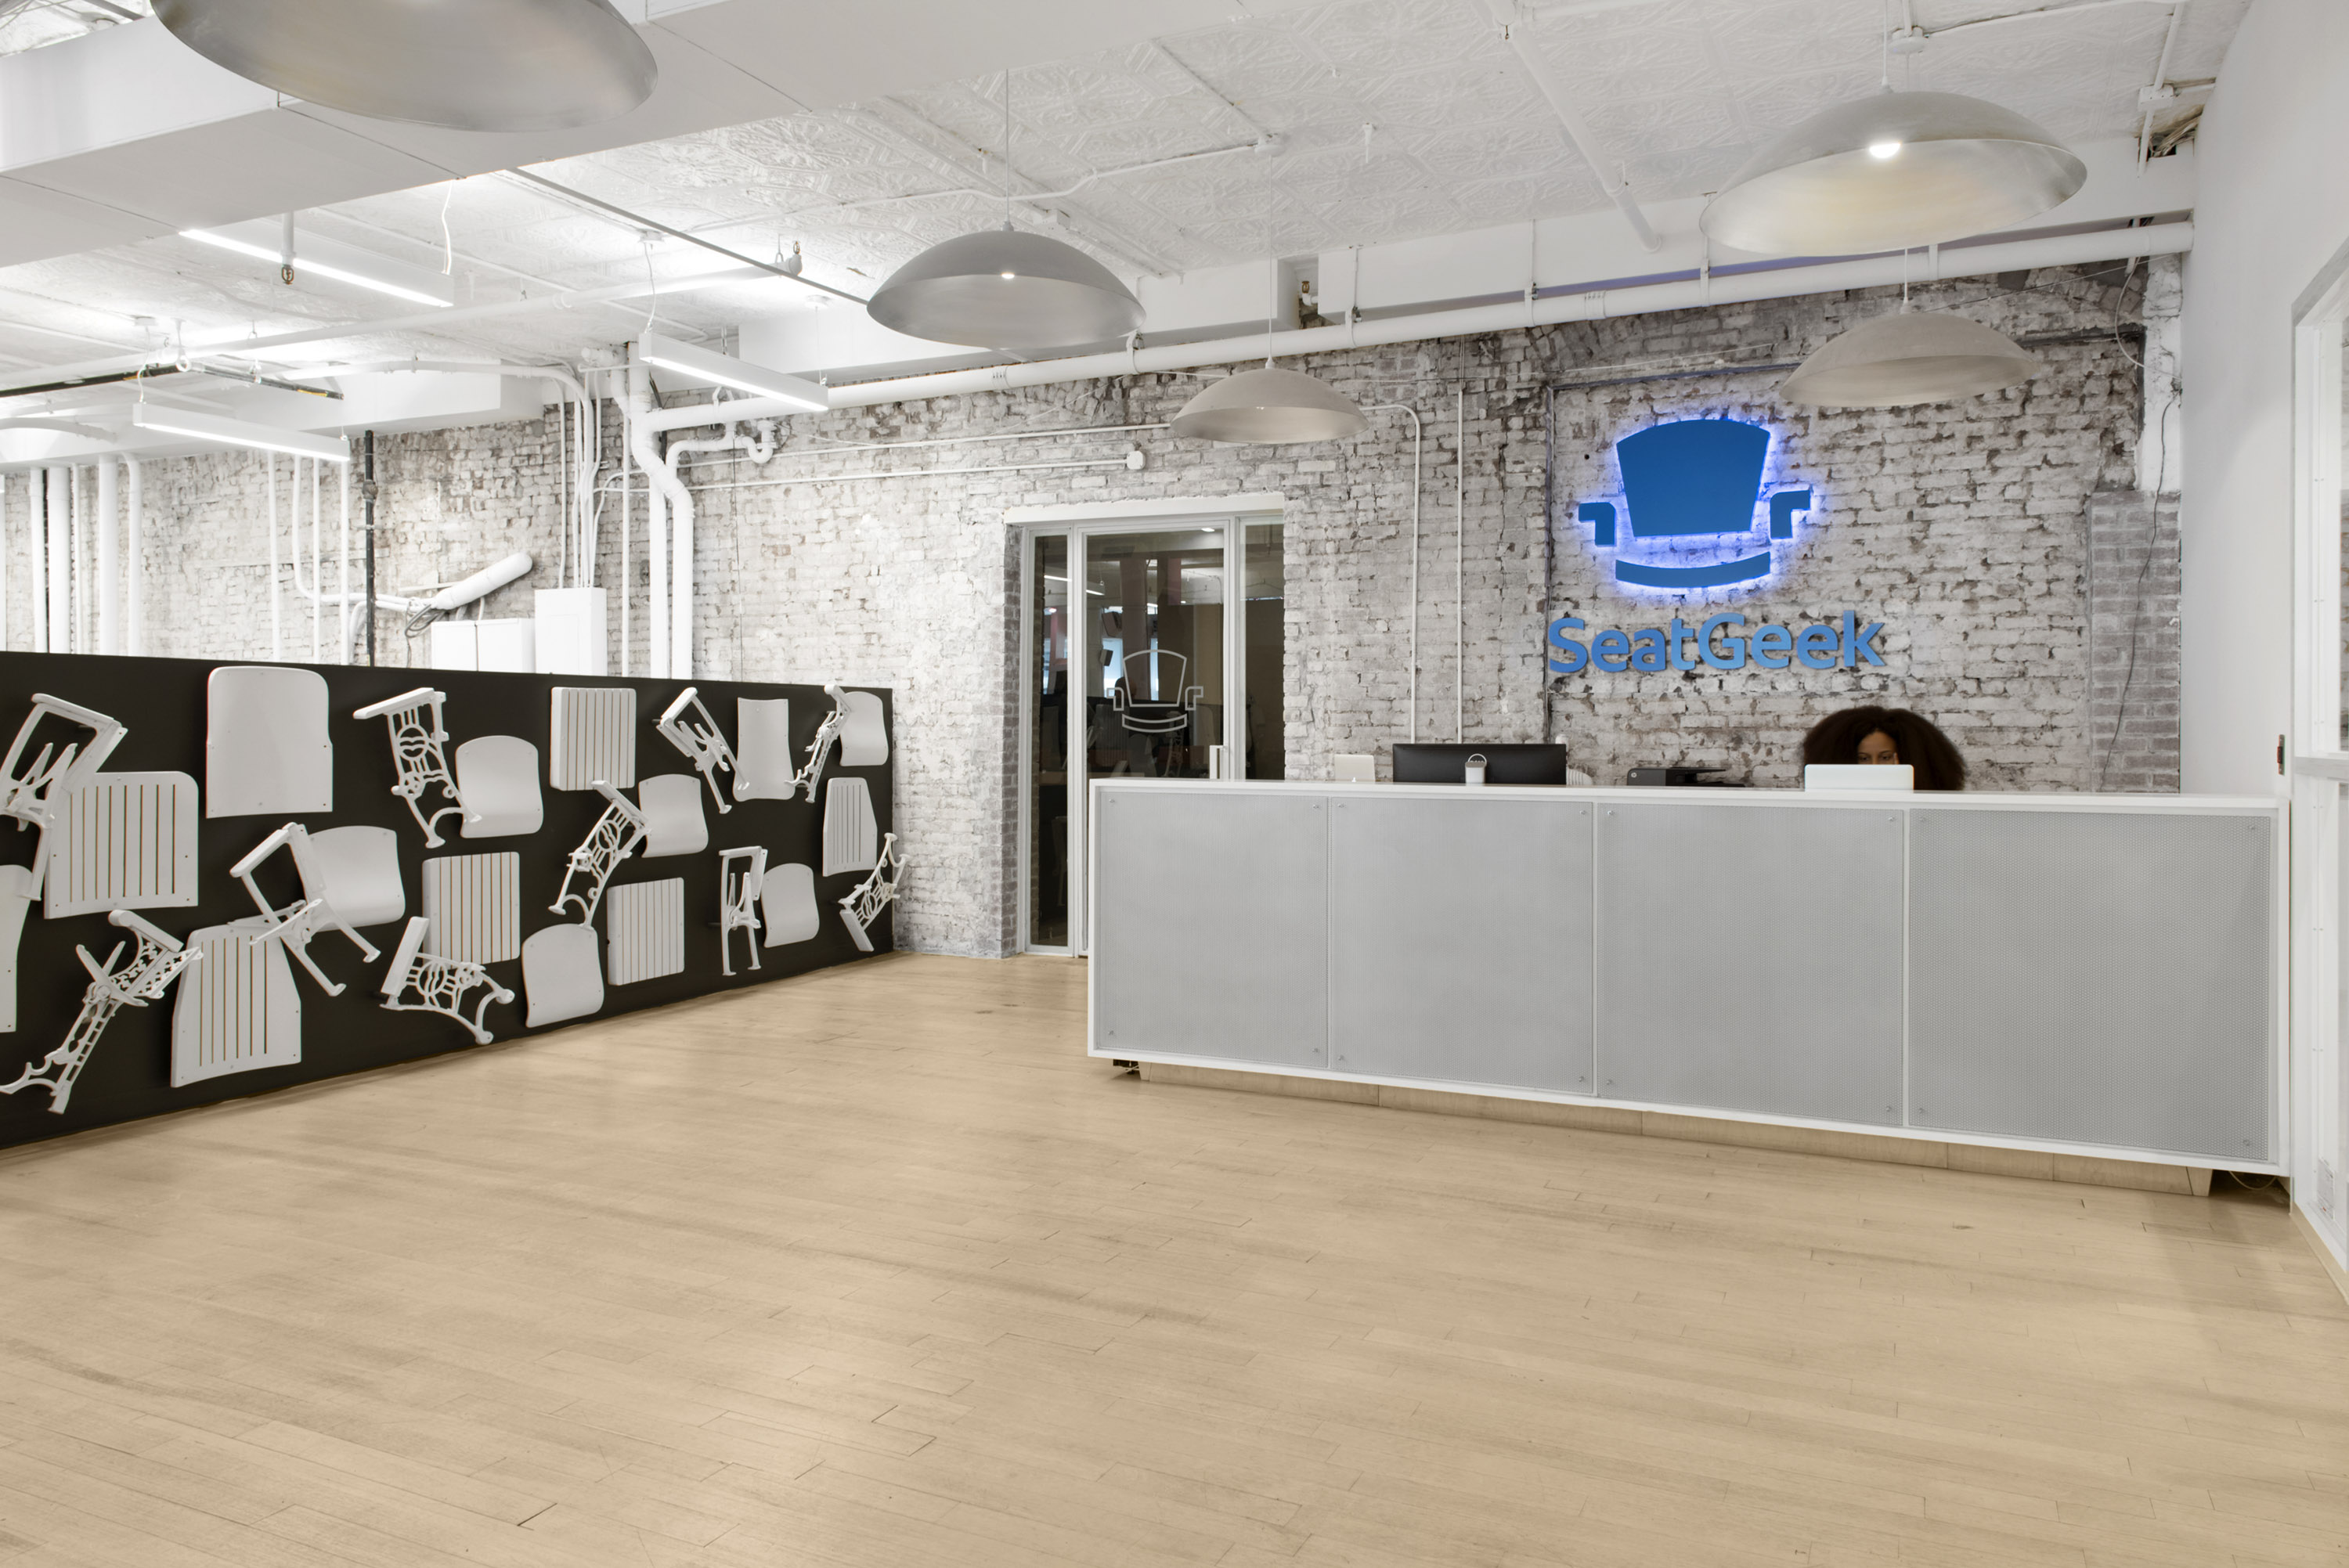 Shot of reception area of white-walled space with pale floors and a low-wall 3D mural of white-washed deconstructed stadium seats against dark blue background.